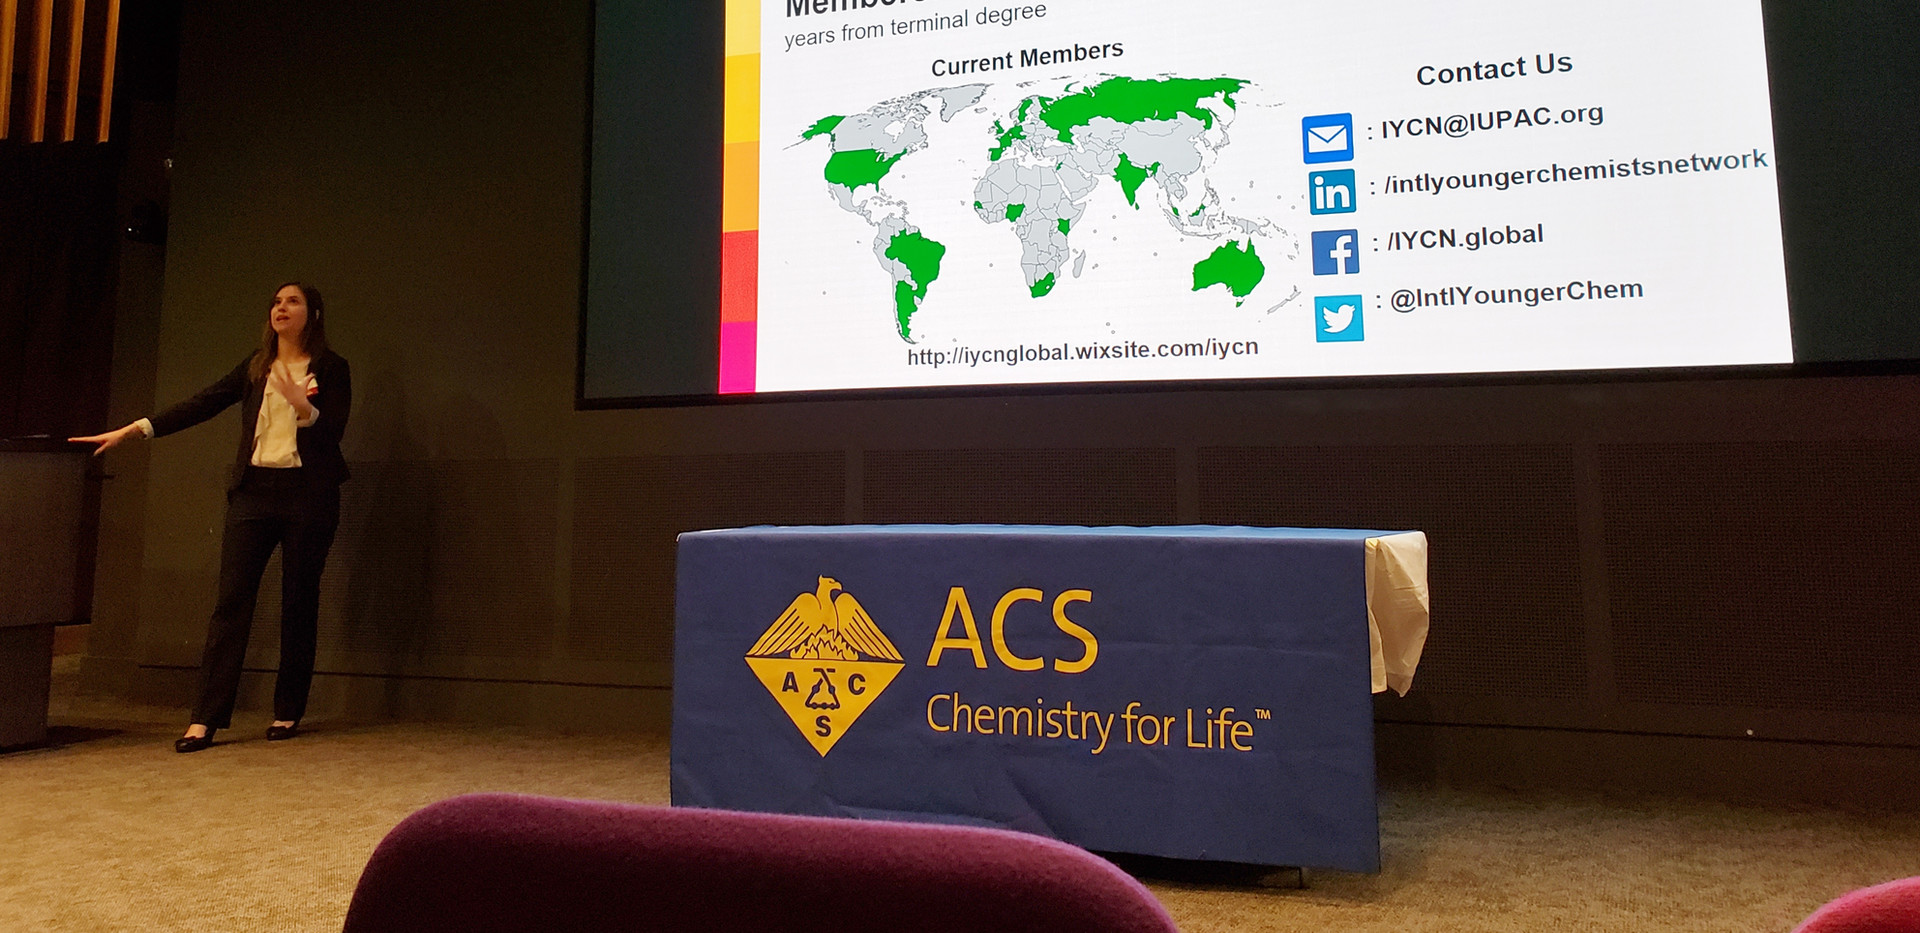 5minute Presentation at the Northeast Student Chemistry Research Conference, Boston, 2018